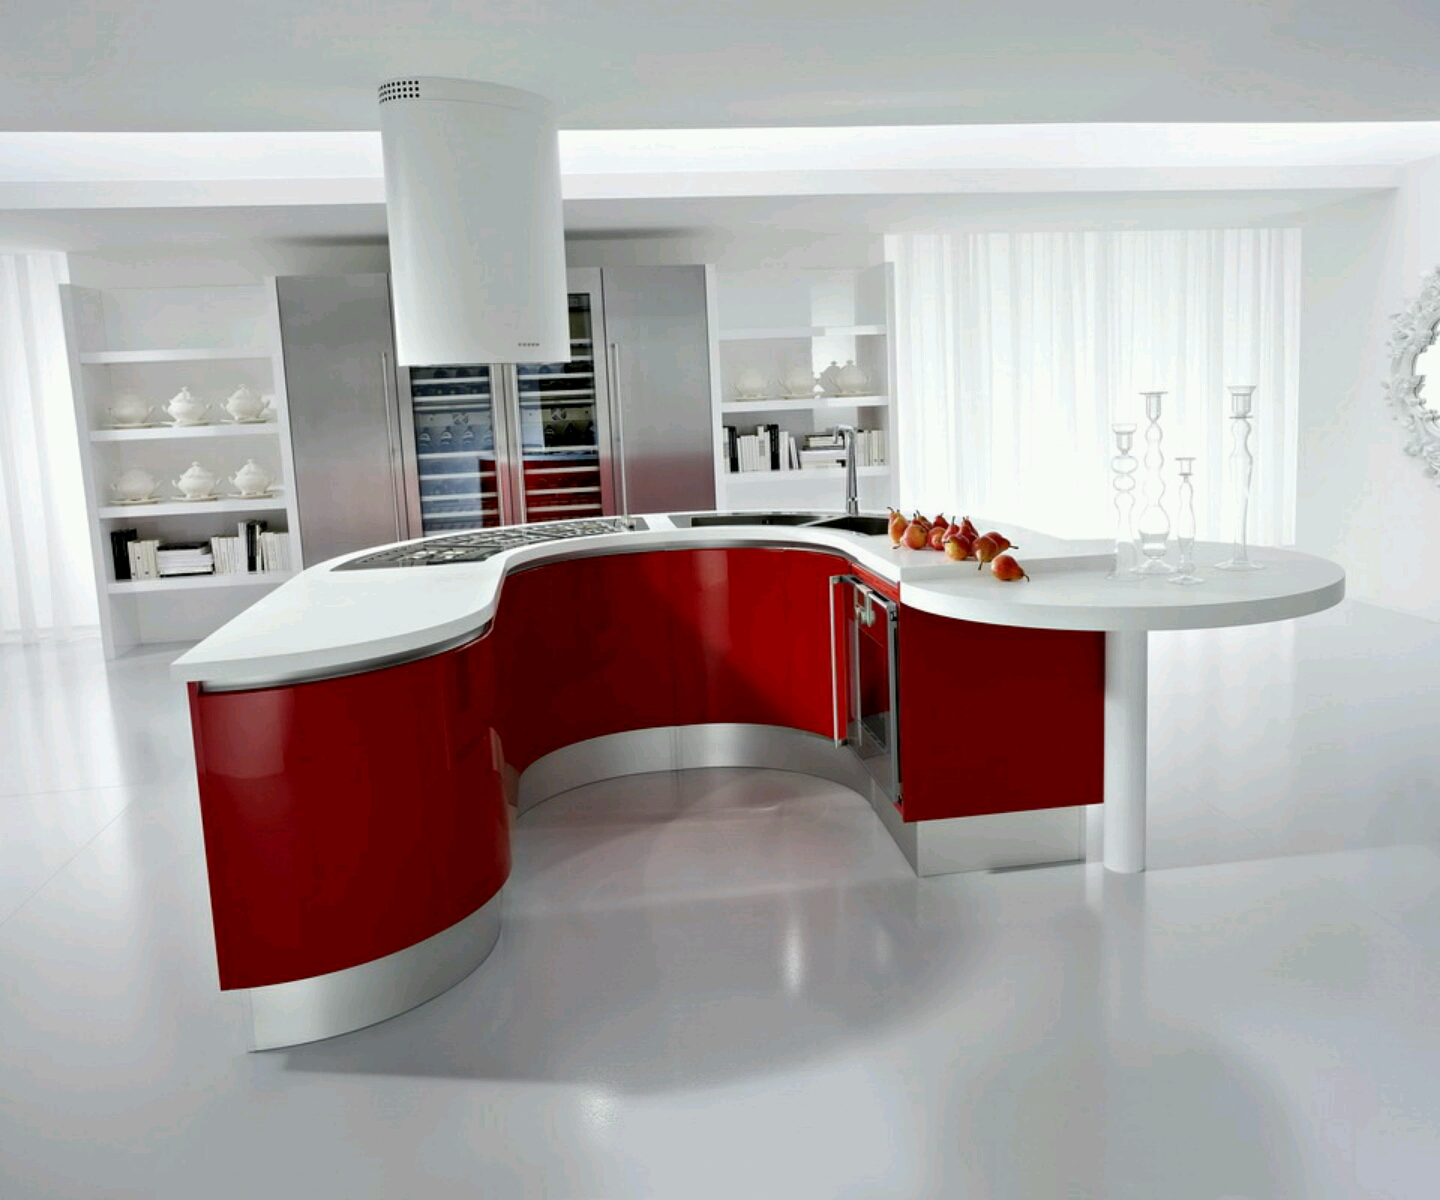 Modern kitchen cabinets designs ideas furniture gallery for Contemporary kitchen style